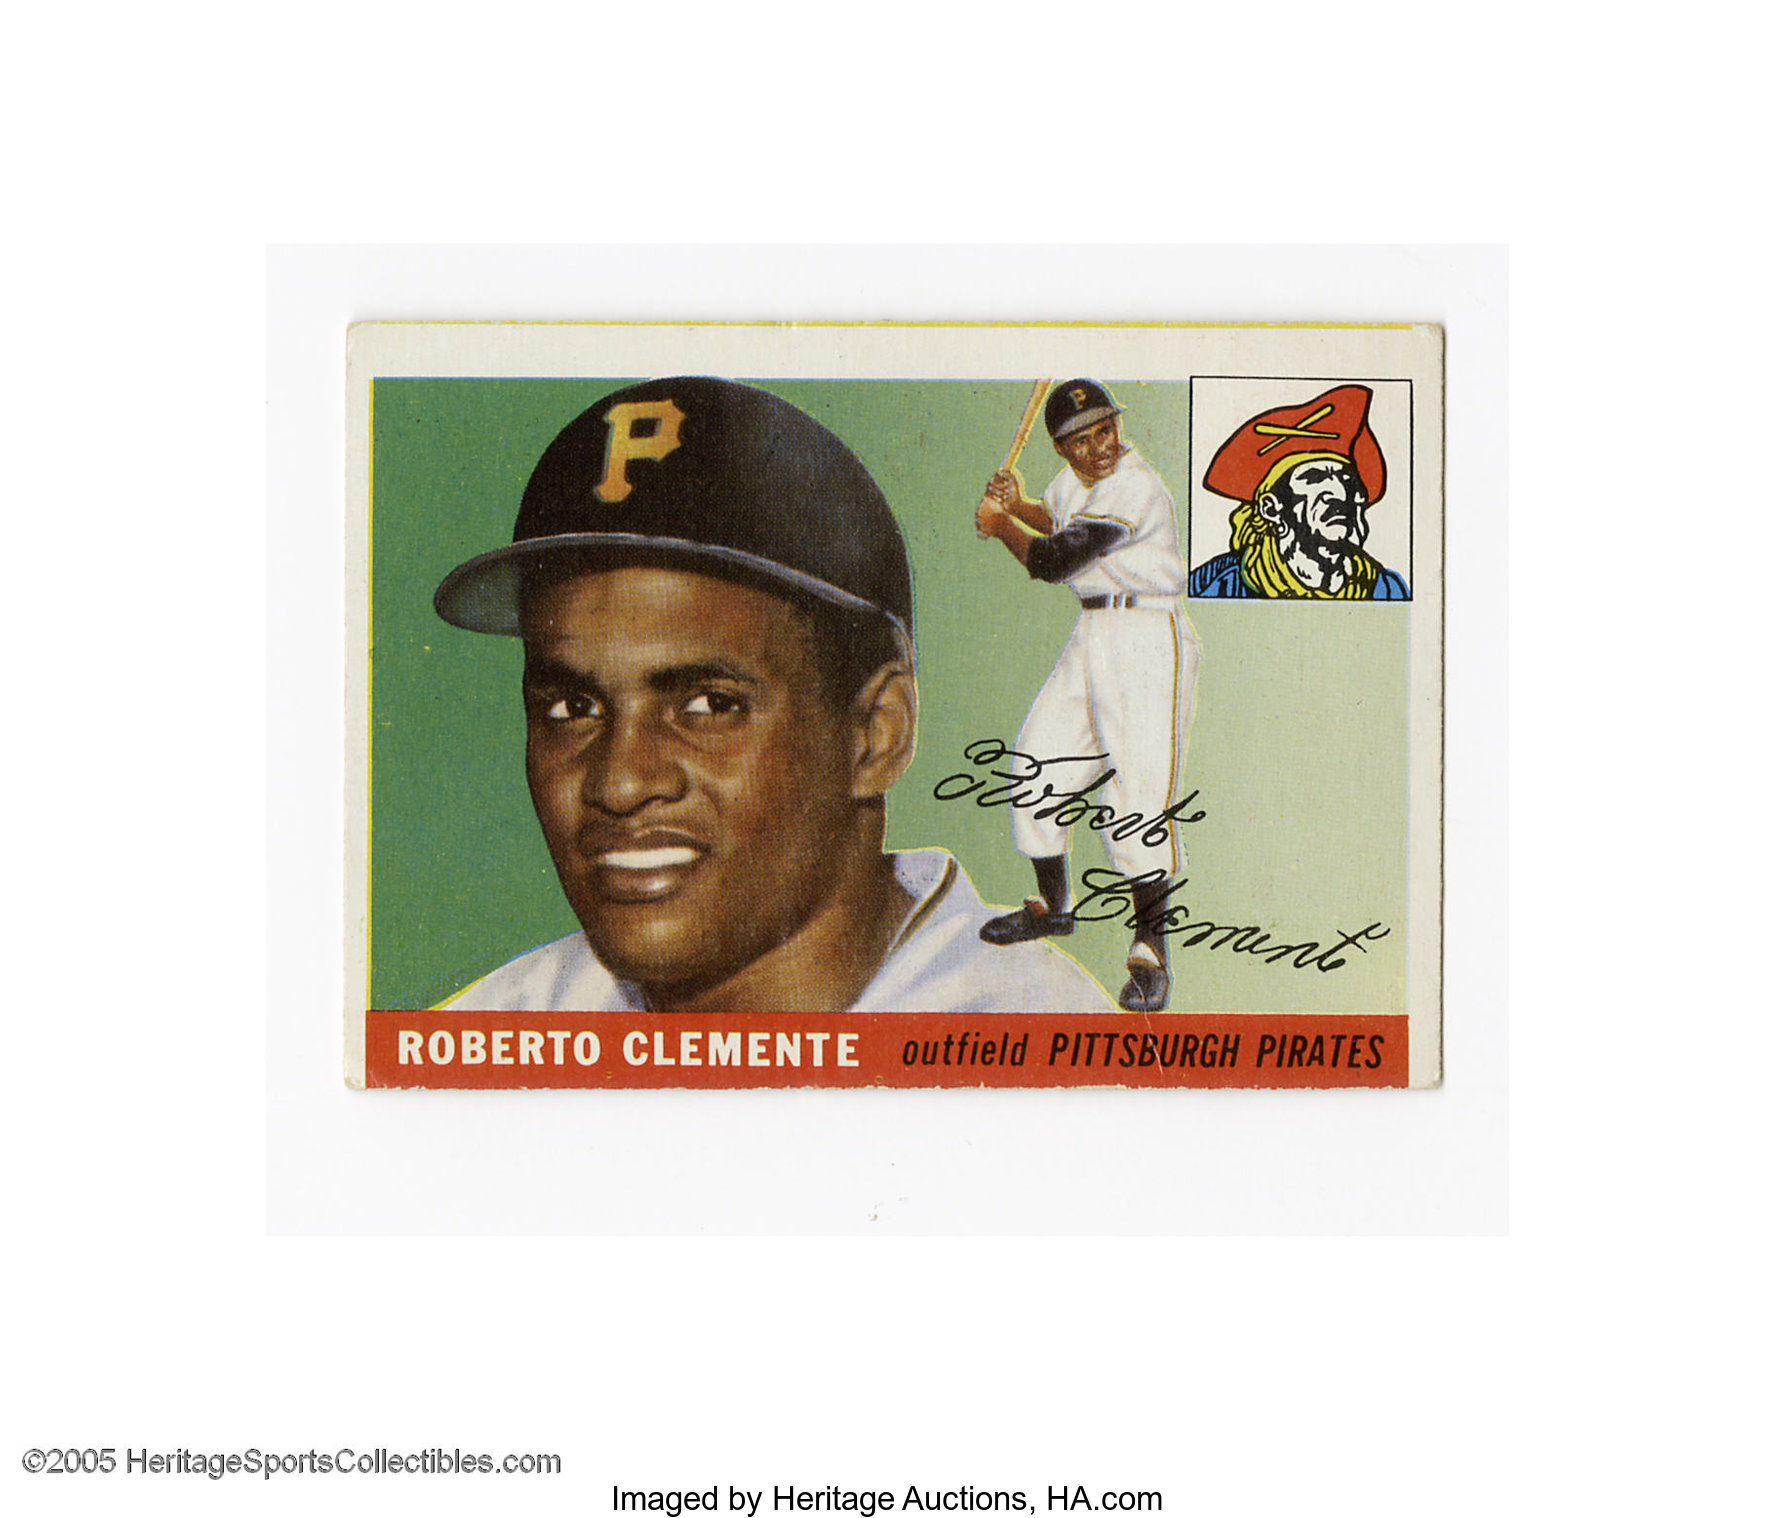 1955 Topps Roberto Clemente 164 G Vg Example Of This